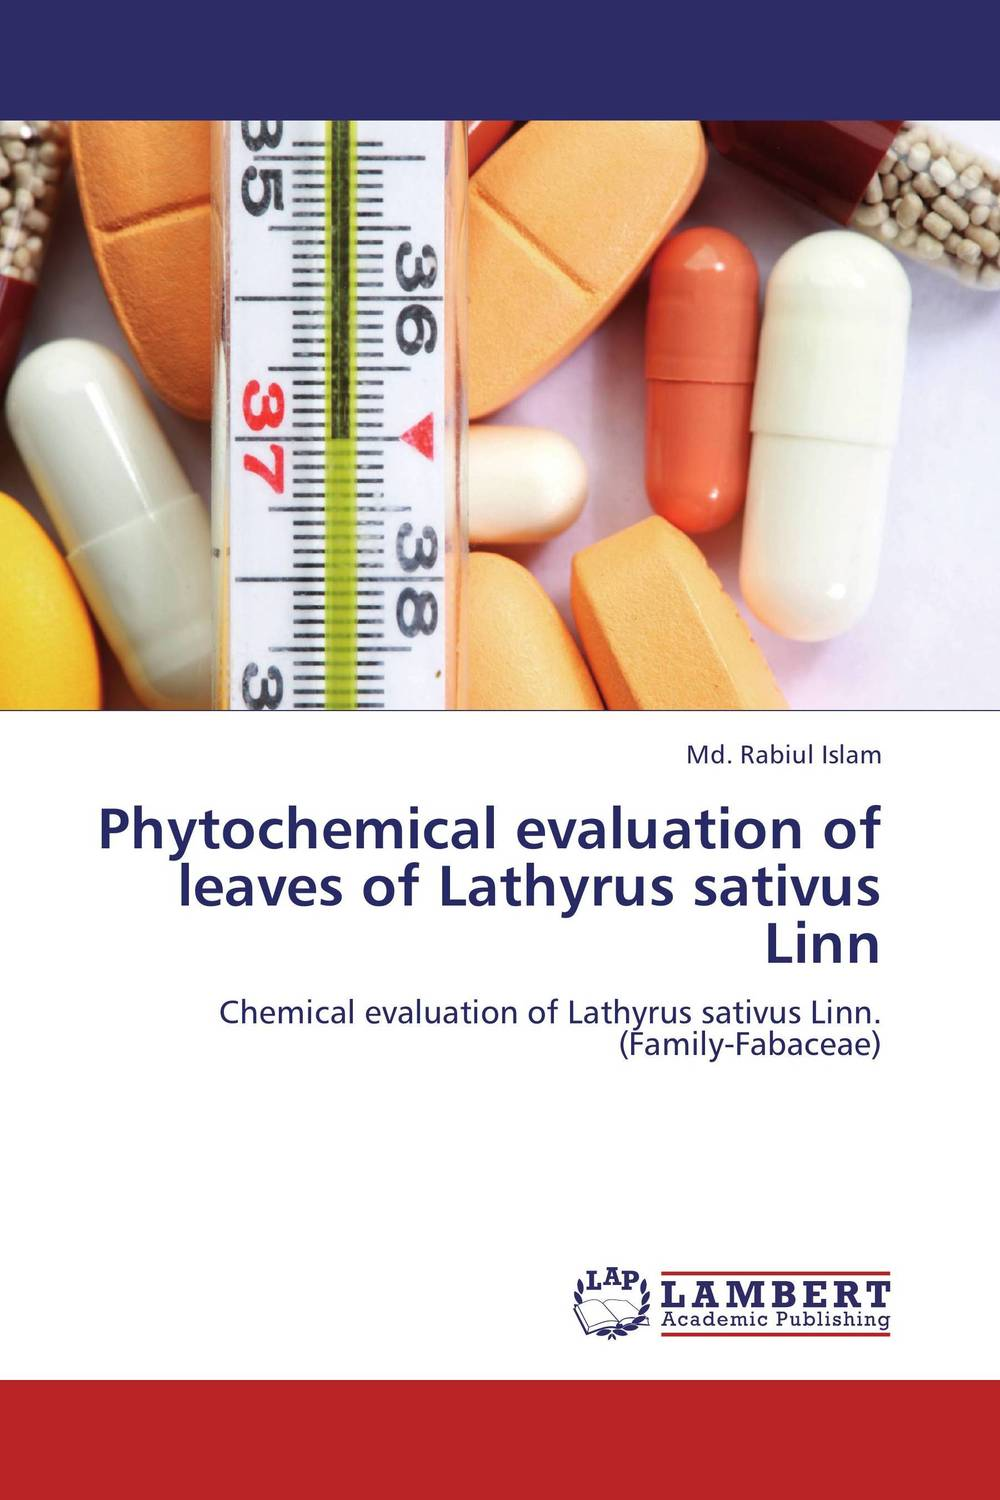 Phytochemical evaluation of leaves of Lathyrus sativus Linn md rabiul islam s m ibrahim sumon and farhana lipi phytochemical evaluation of leaves of cymbopogan citratus